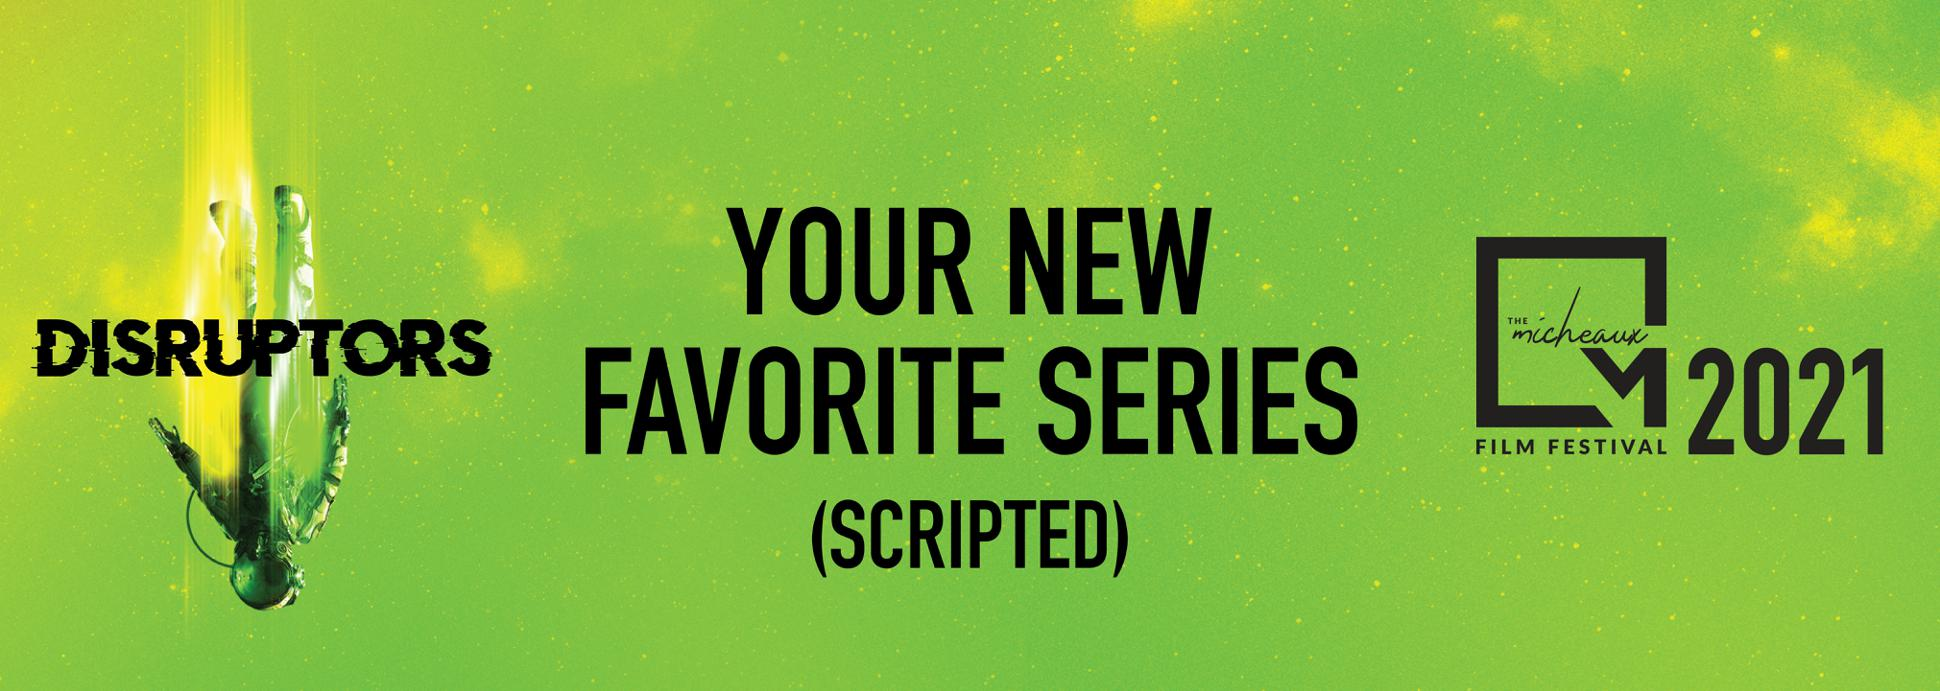 Your New Favorite Series  (A Scripted Collection)